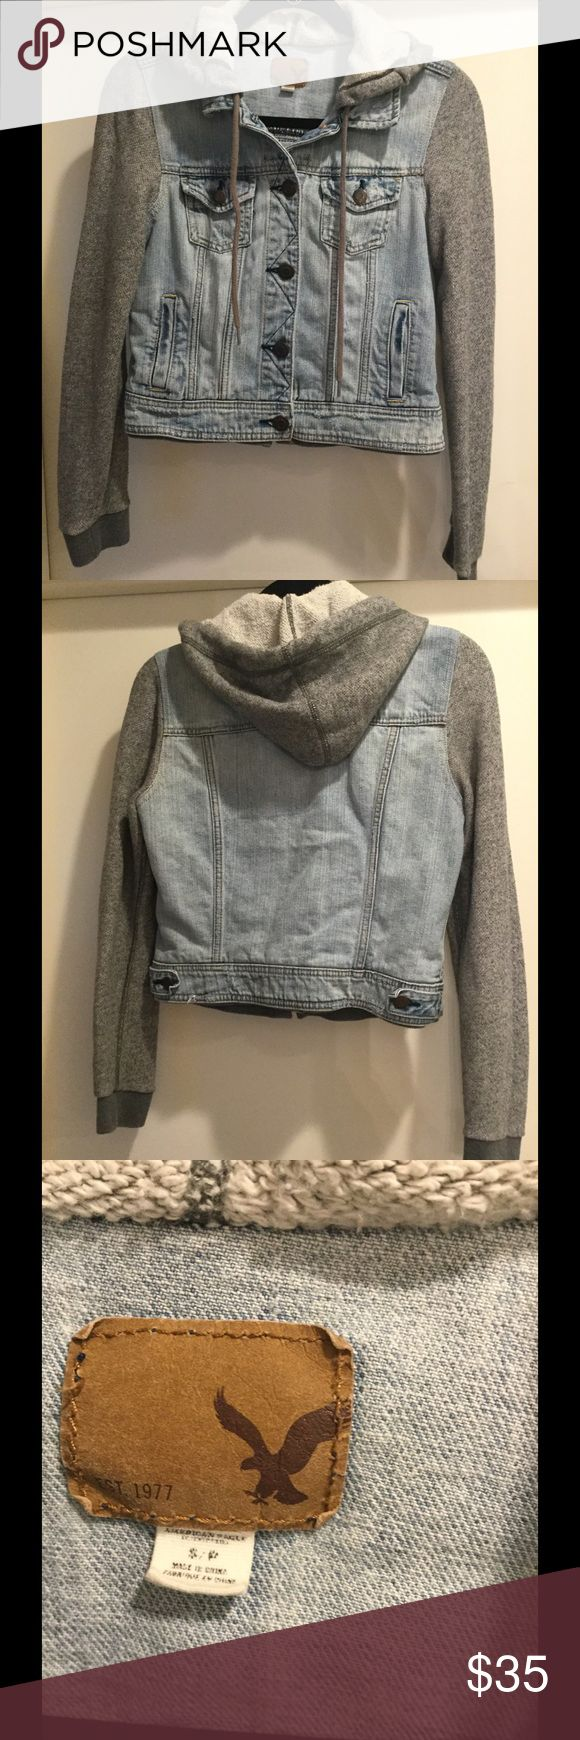 American Eagle 🦅 Jean jacket w/ Hoodie Size S Really cute Jean jacket with grey hoodie and grey sleeves. Size S. It does have a small hole on Hoodie but when drawstring is pulled it is not visible. 100 % cotton. Copper colored buttons. Good condition. American Eagle Outfitters Jackets & Coats Jean Jackets